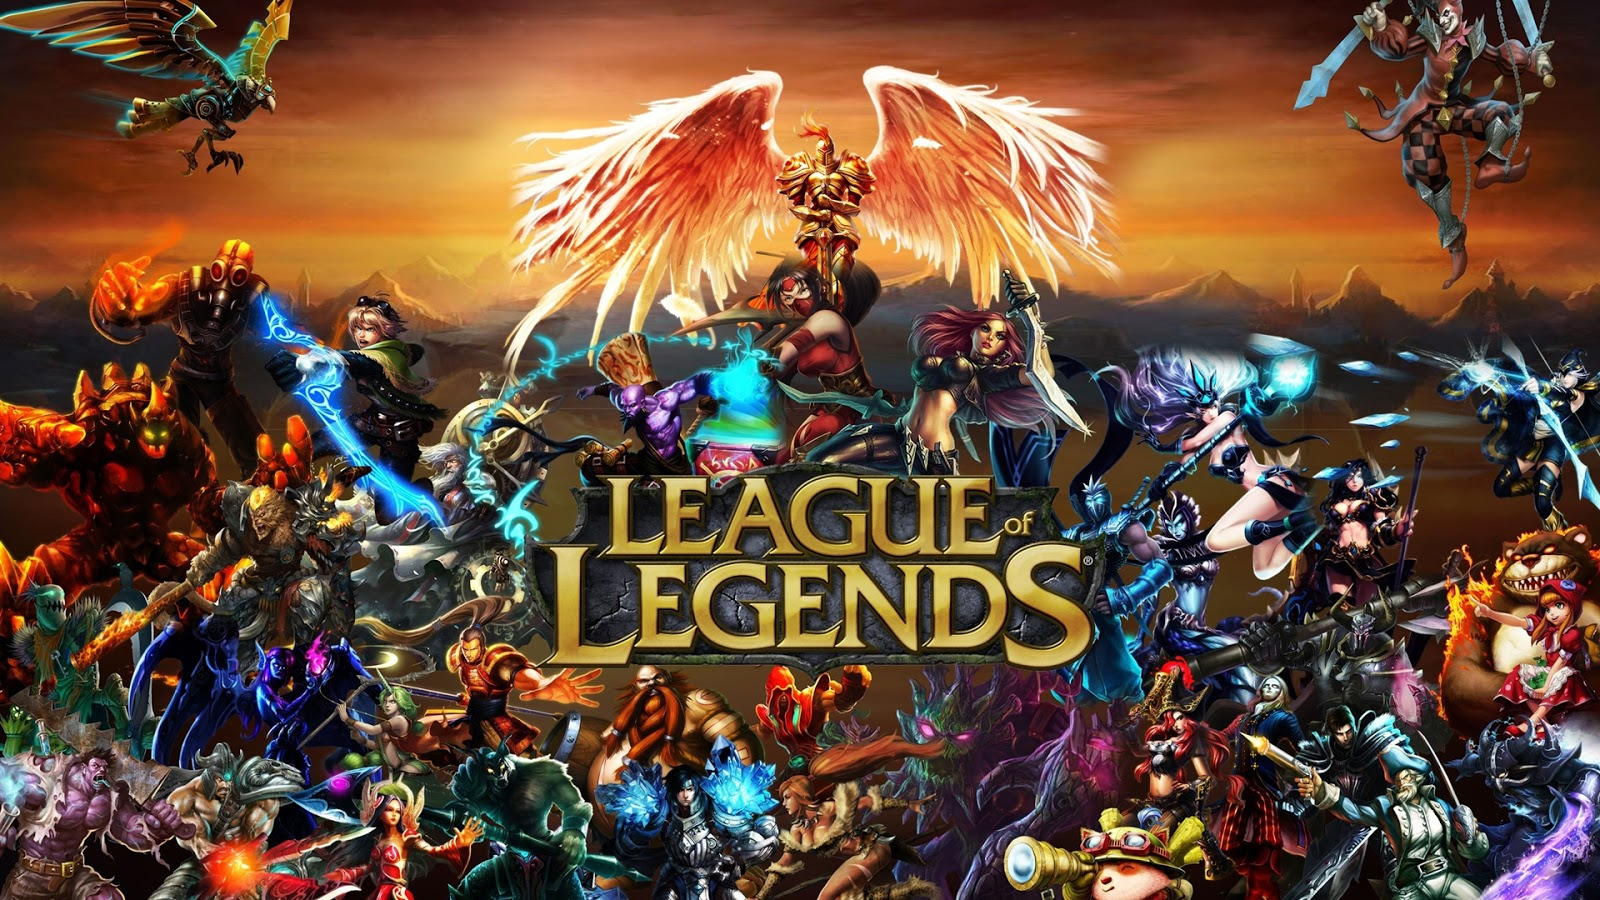 [Bild: league-of-legends-wallpapers-hd-1080p1.jpg]